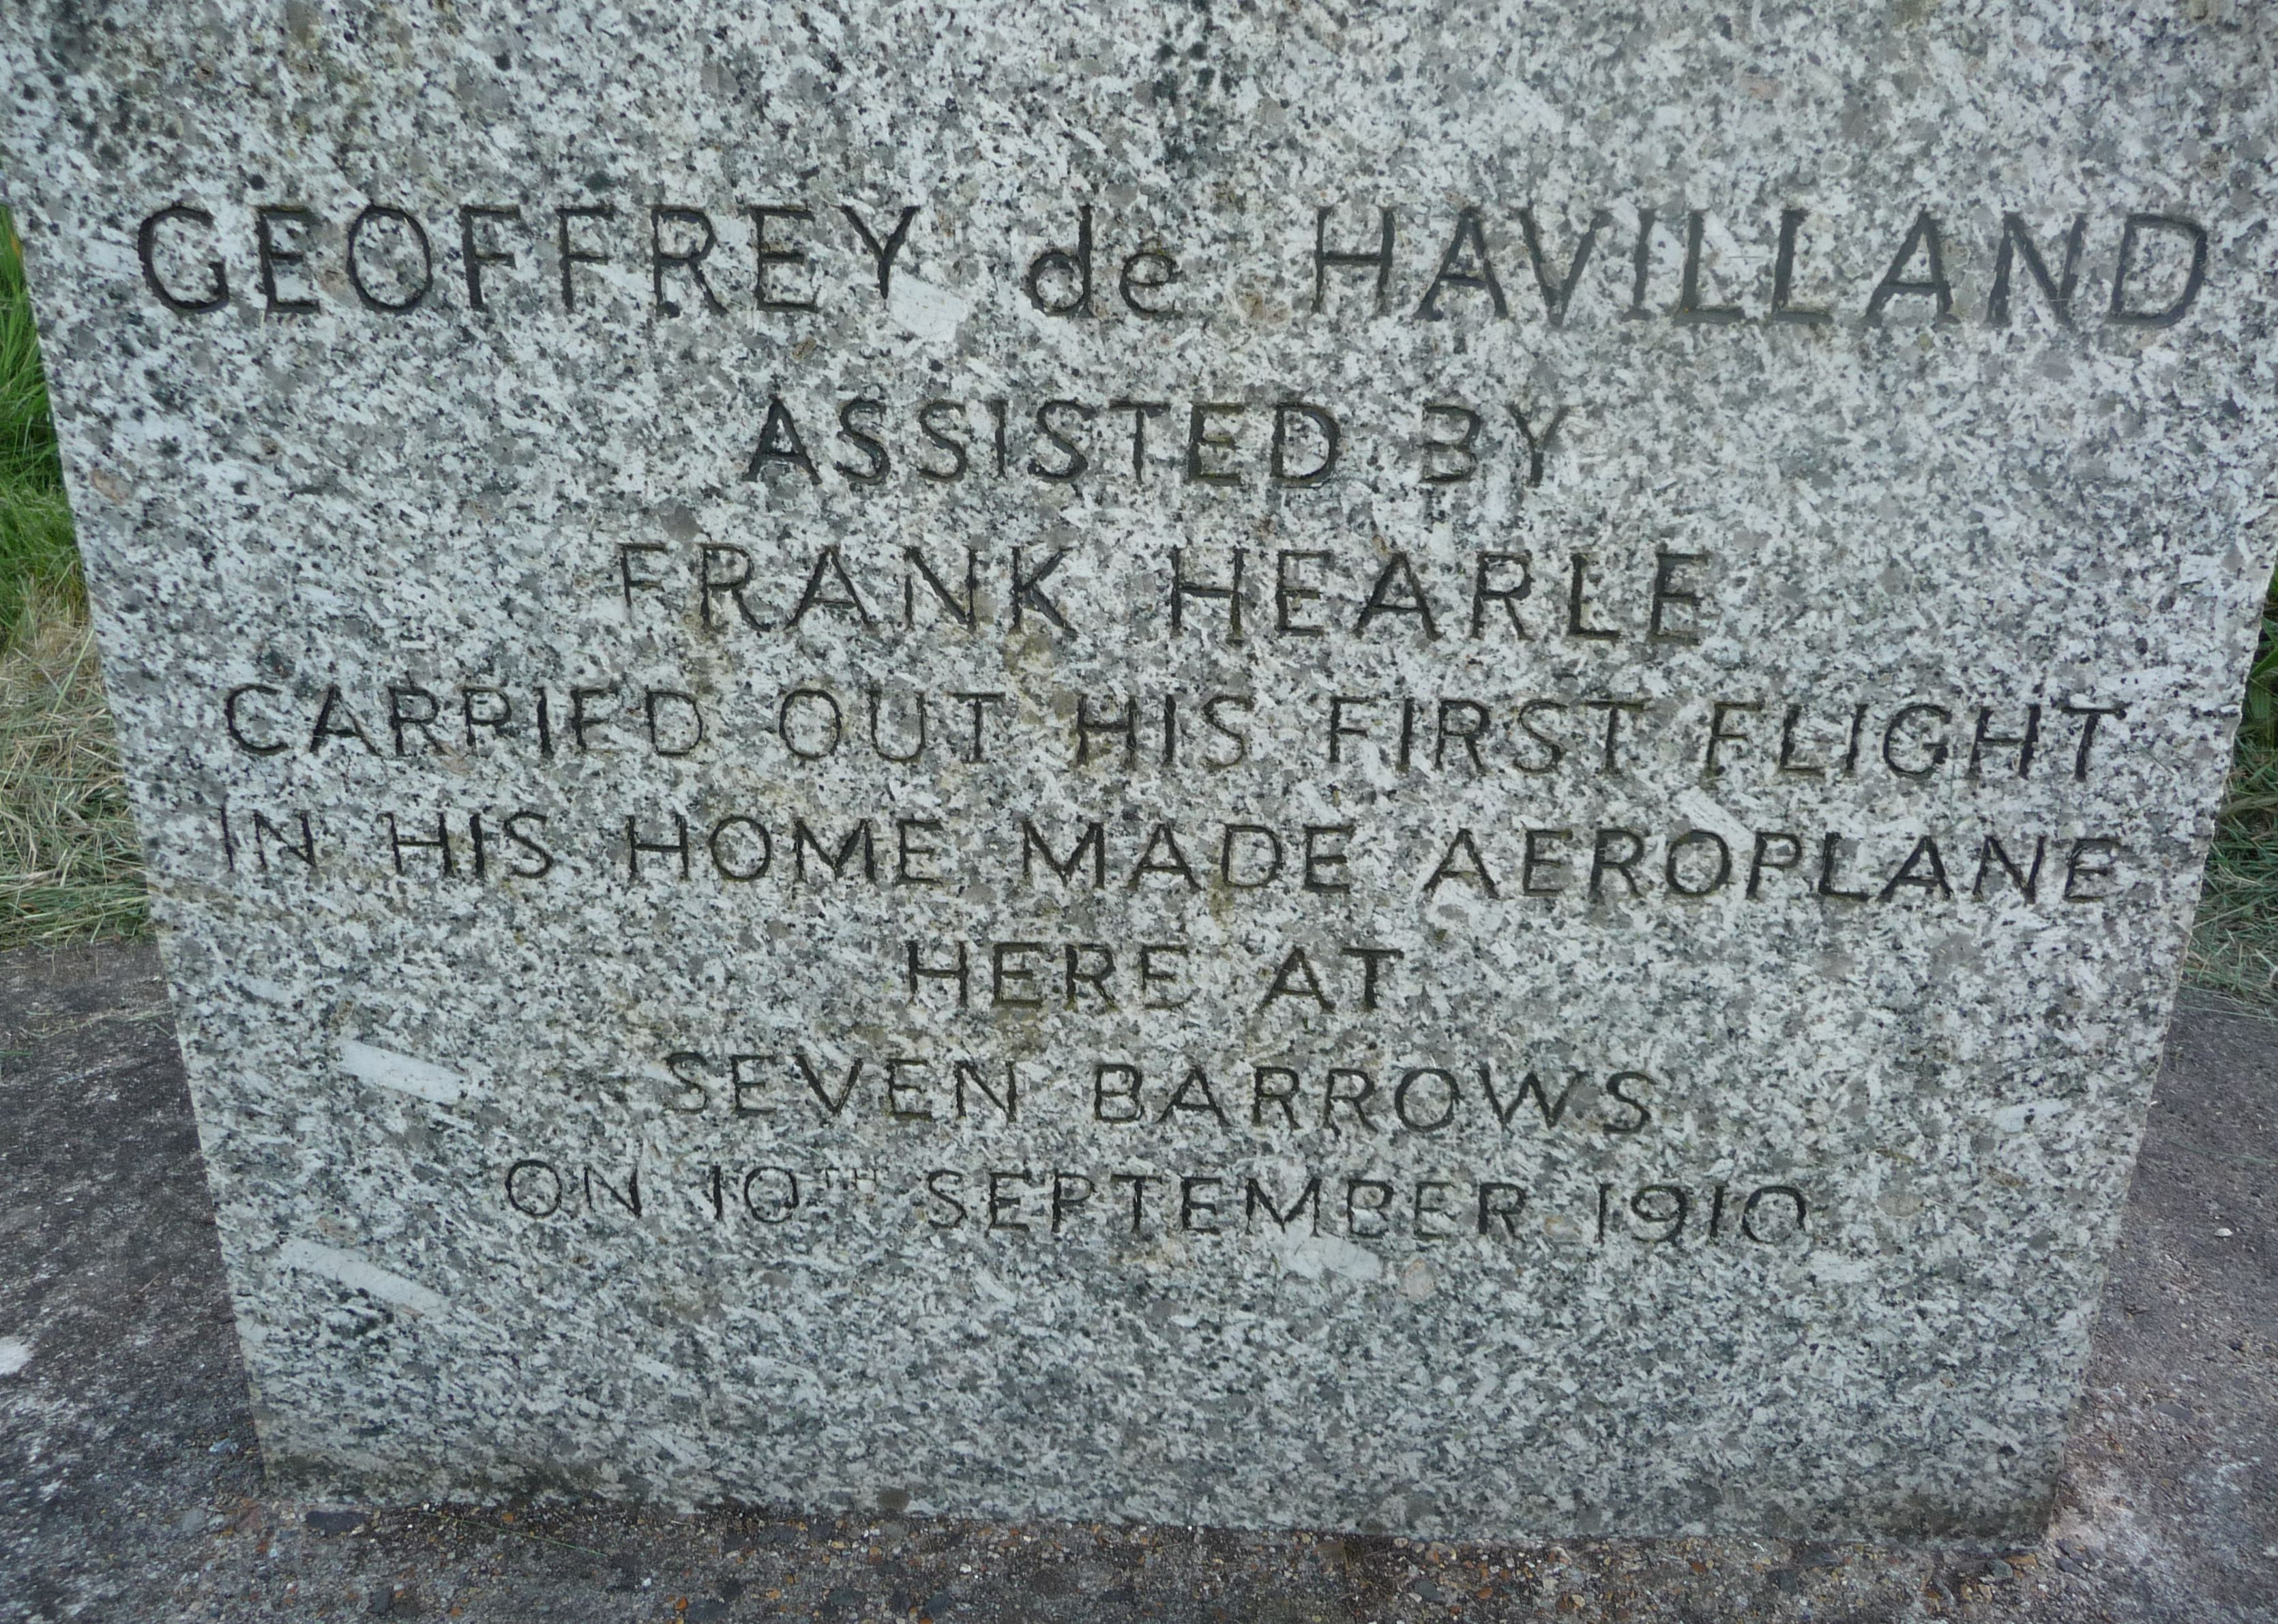 De-havilland-first-flight-memorial-stone